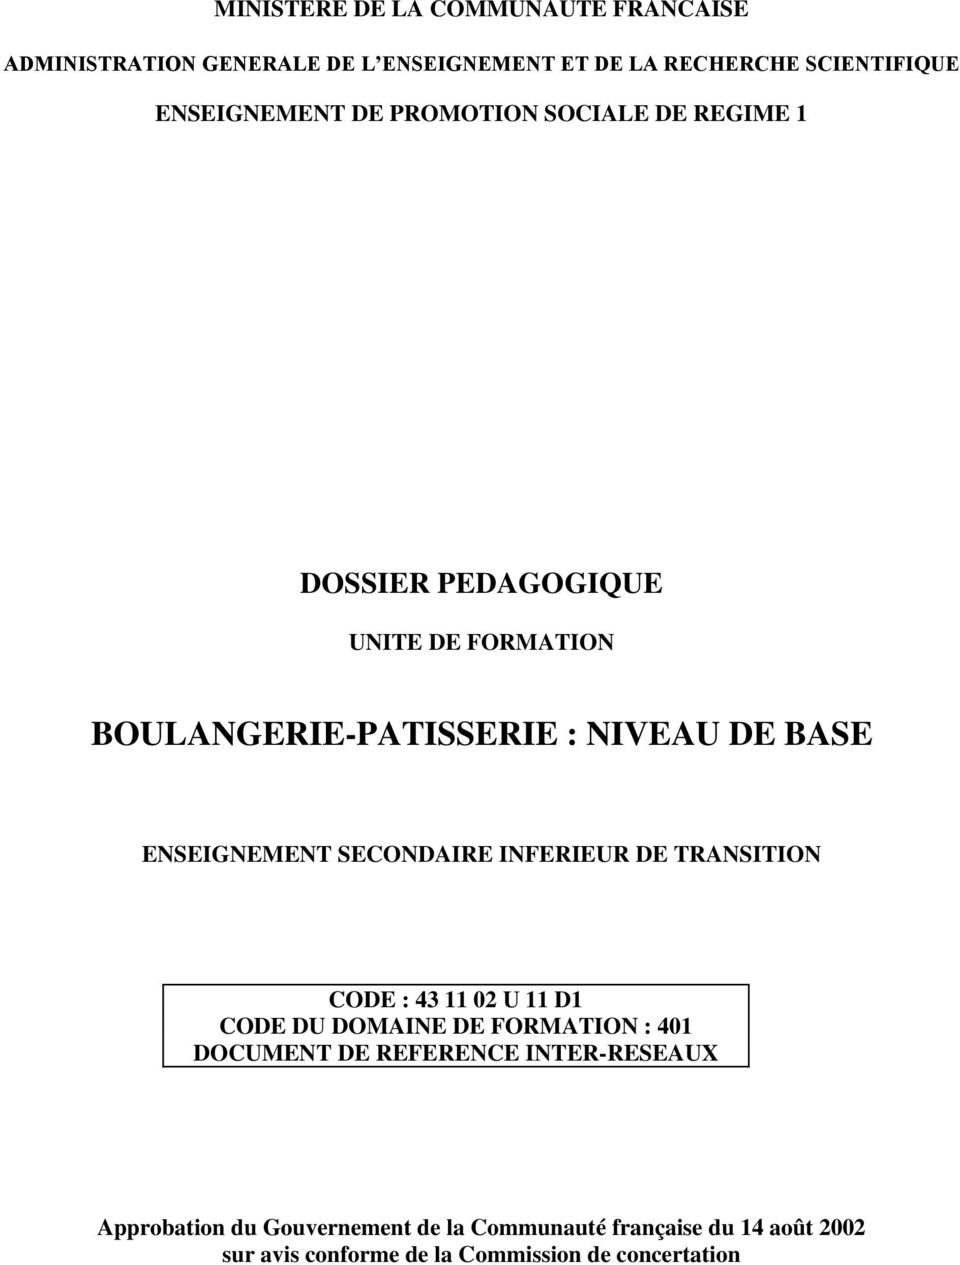 SECONDAIRE INFERIEUR DE TRANSITION CODE : 43 11 02 U 11 D1 CODE DU DOMAINE DE FORMATION : 401 DOCUMENT DE REFERENCE